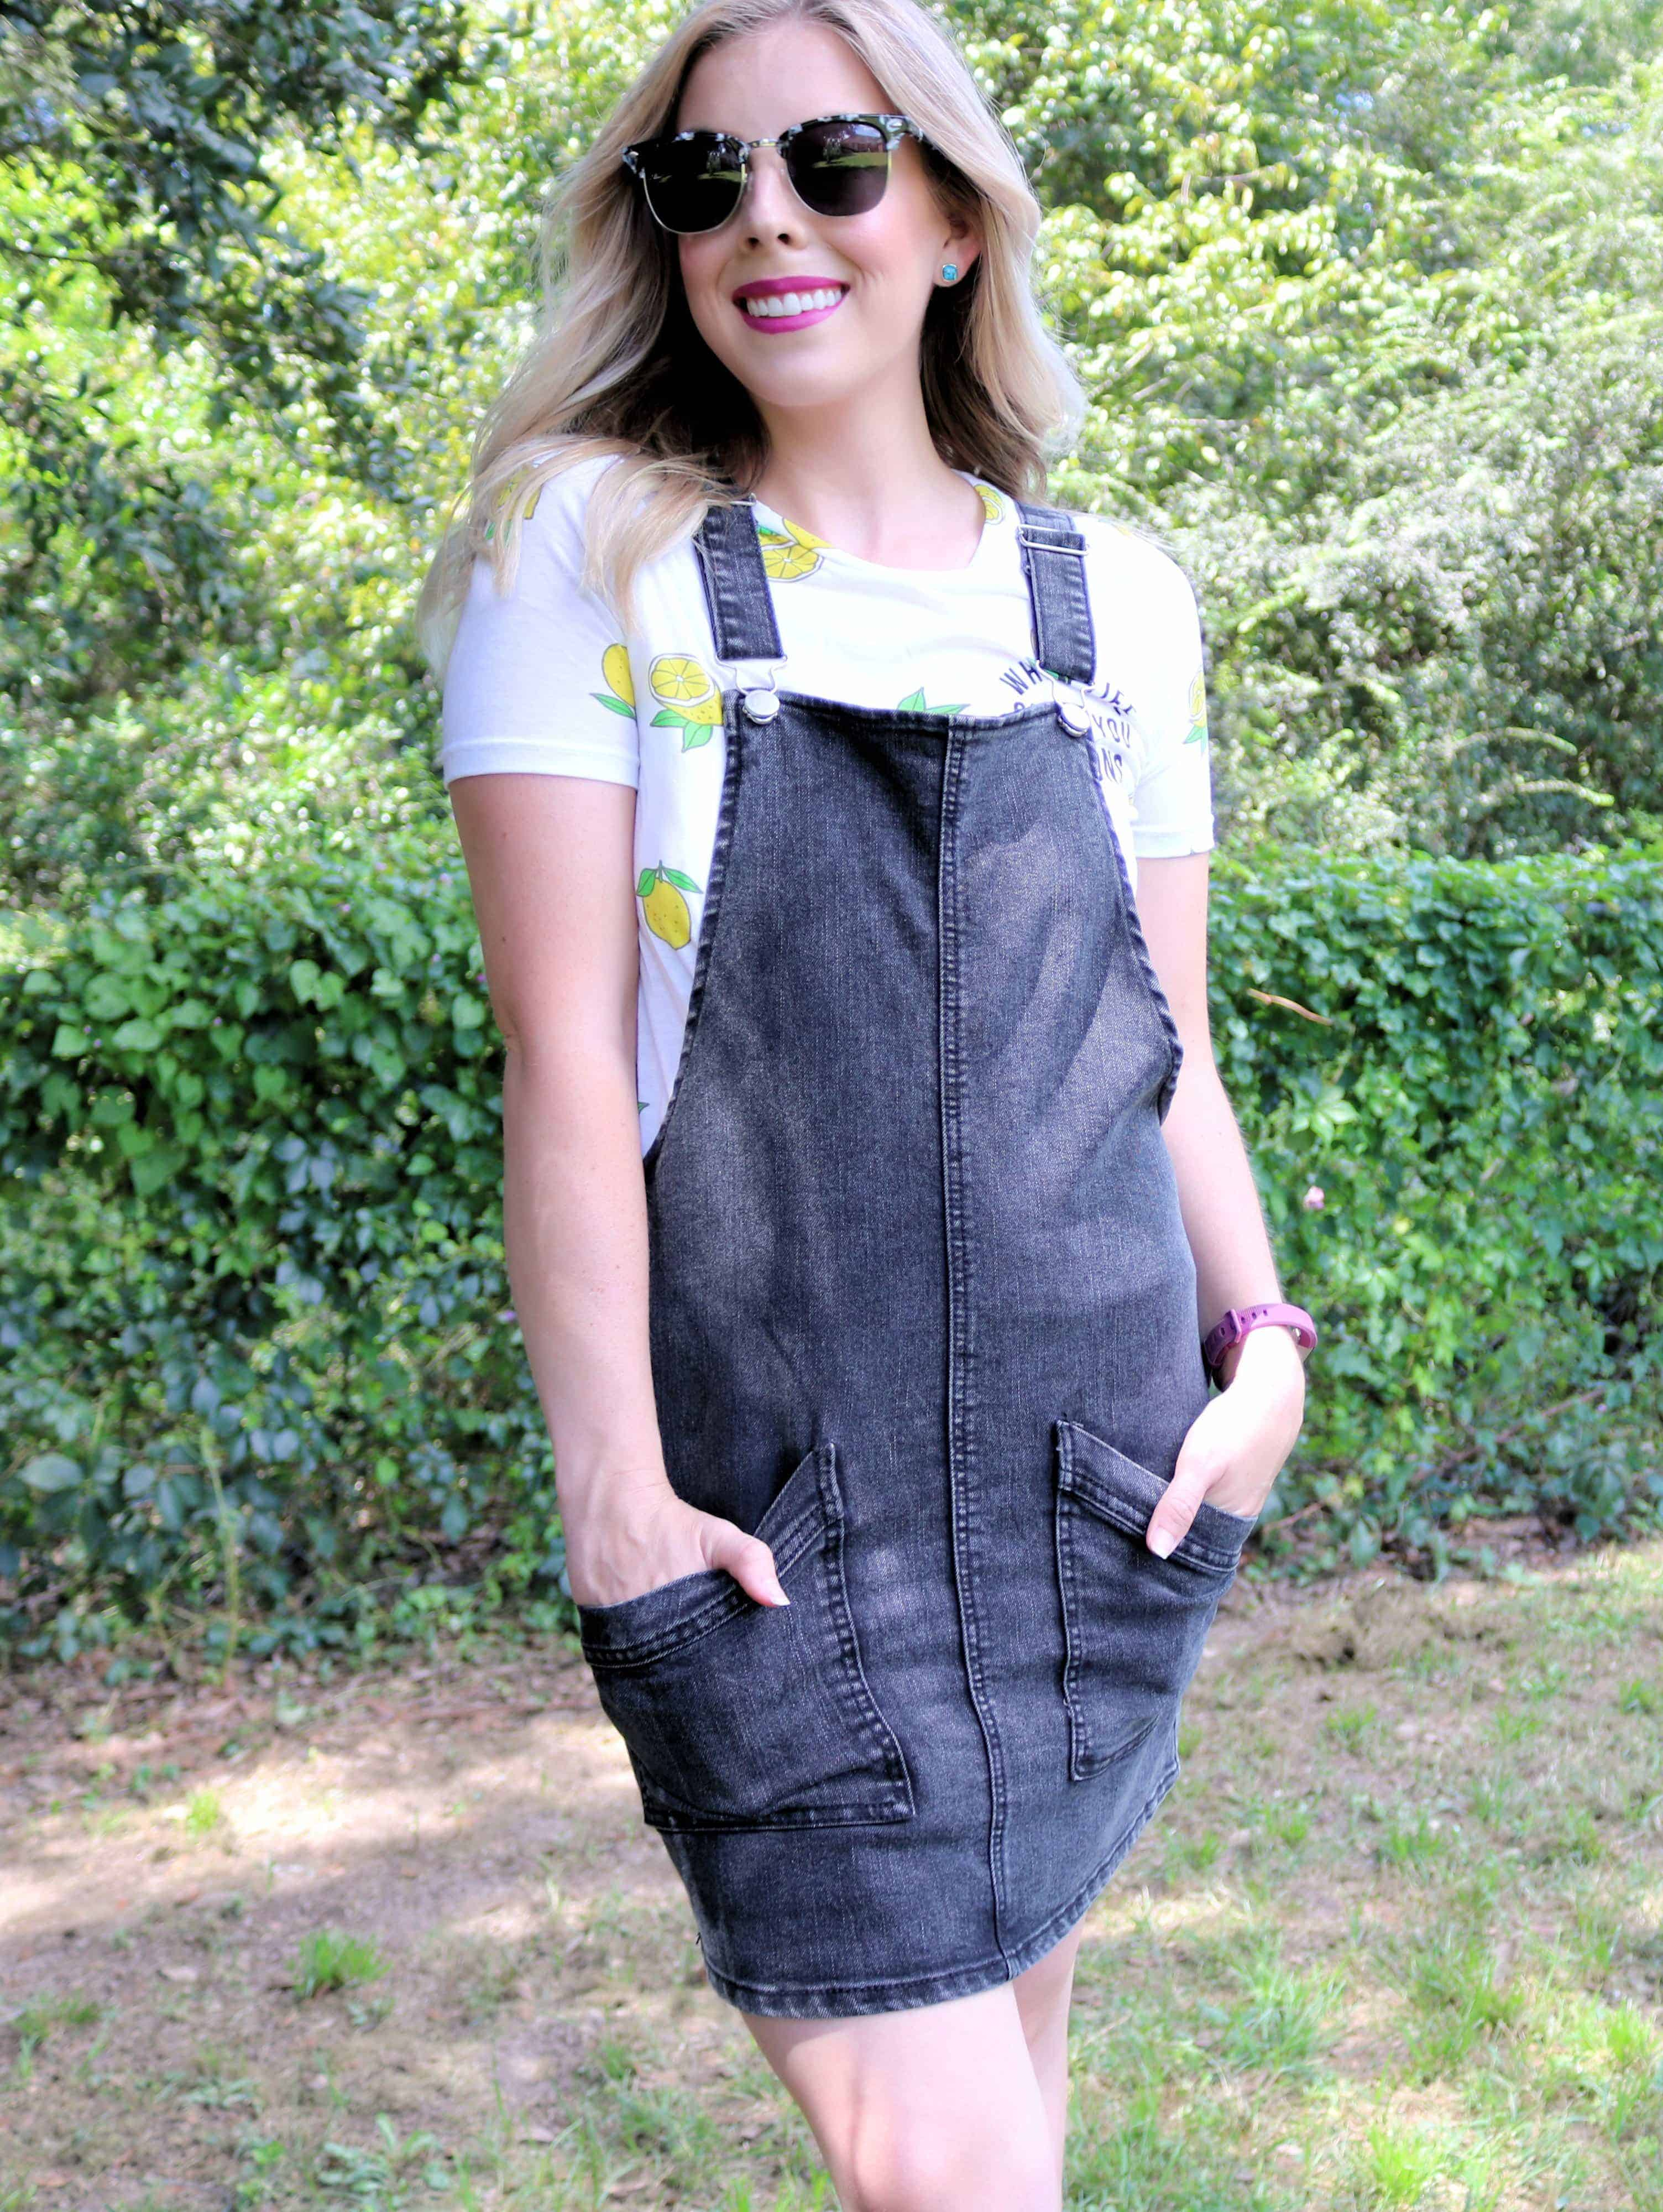 a7dbbb5e541 Sharing one of my favorite fashion items today for transitioning from  summer to fall-Denim